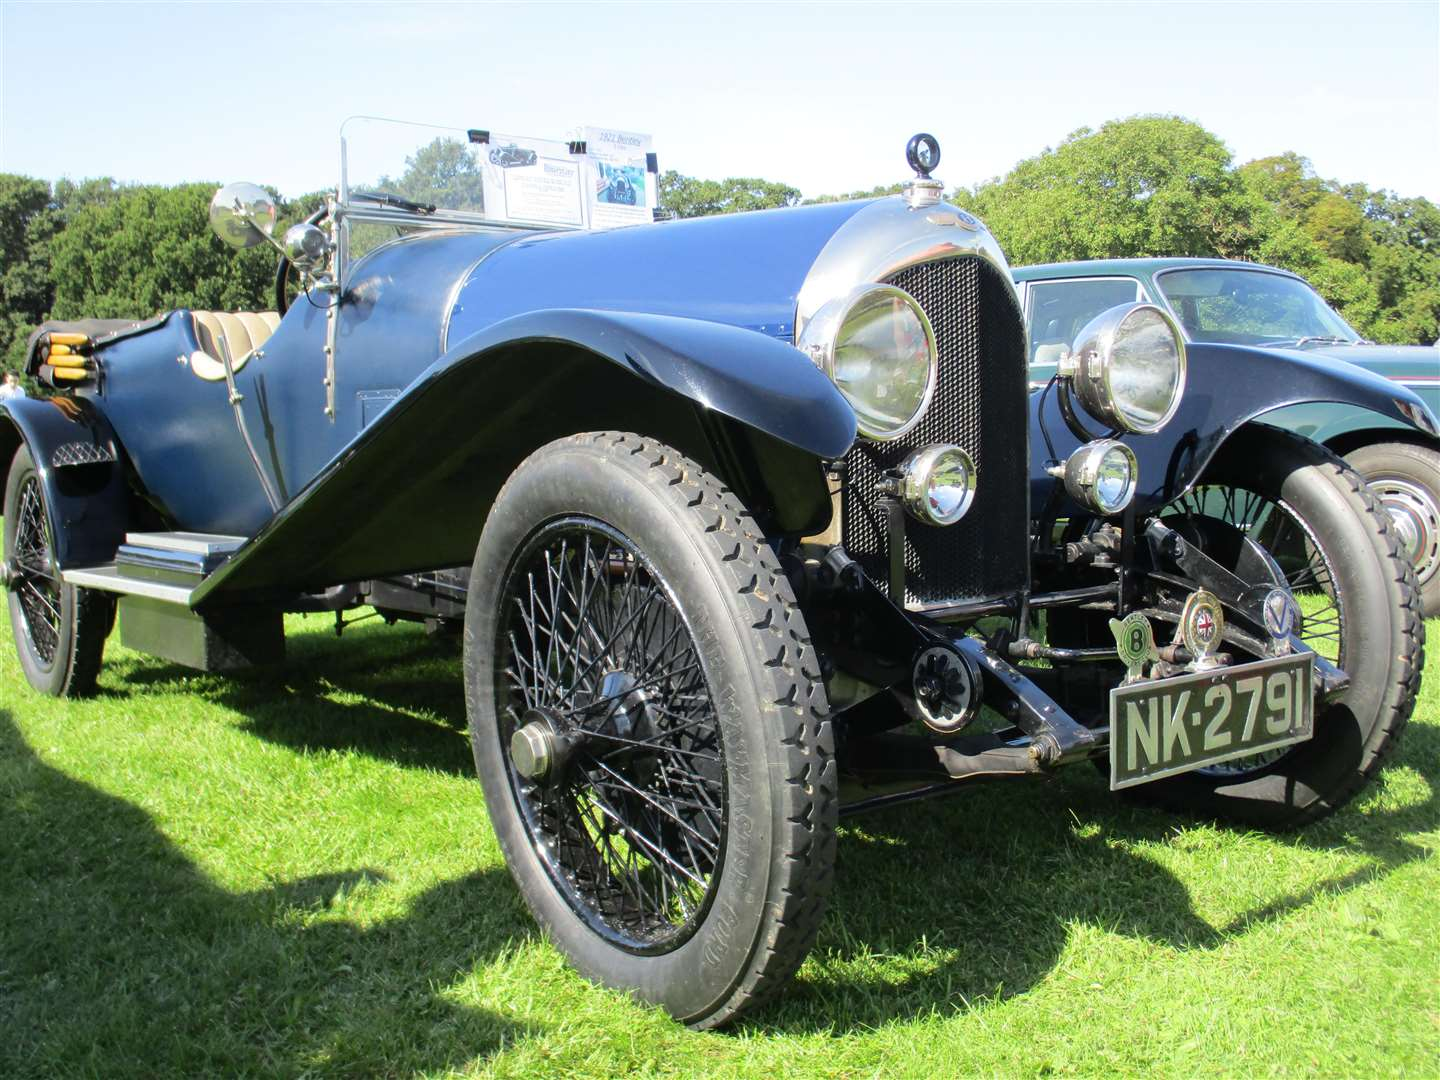 Classic motor show at Groombridge Place